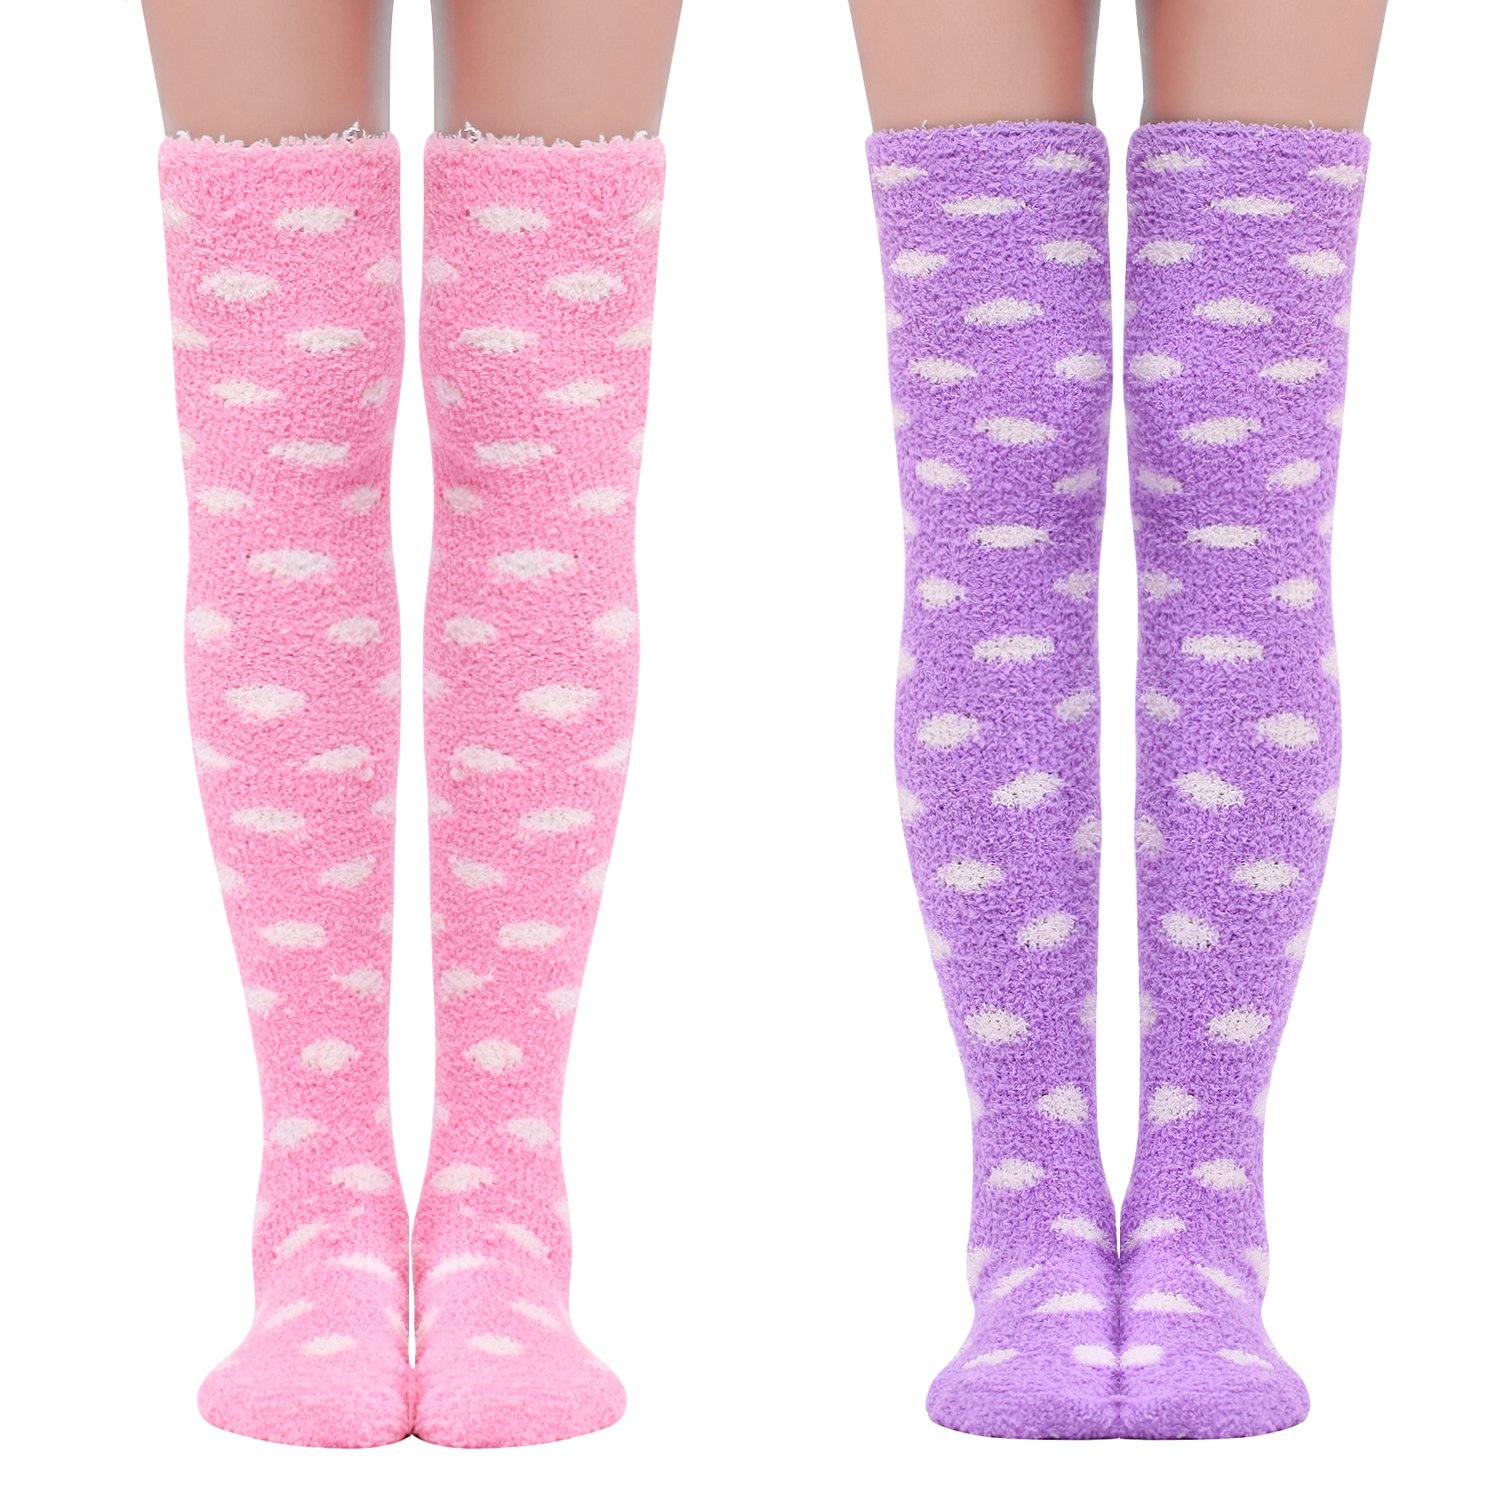 Littleforbig Cute Coral Fleece Thigh High Long Dotted Socks 2 Pairs LA01-LB-SL603-S201